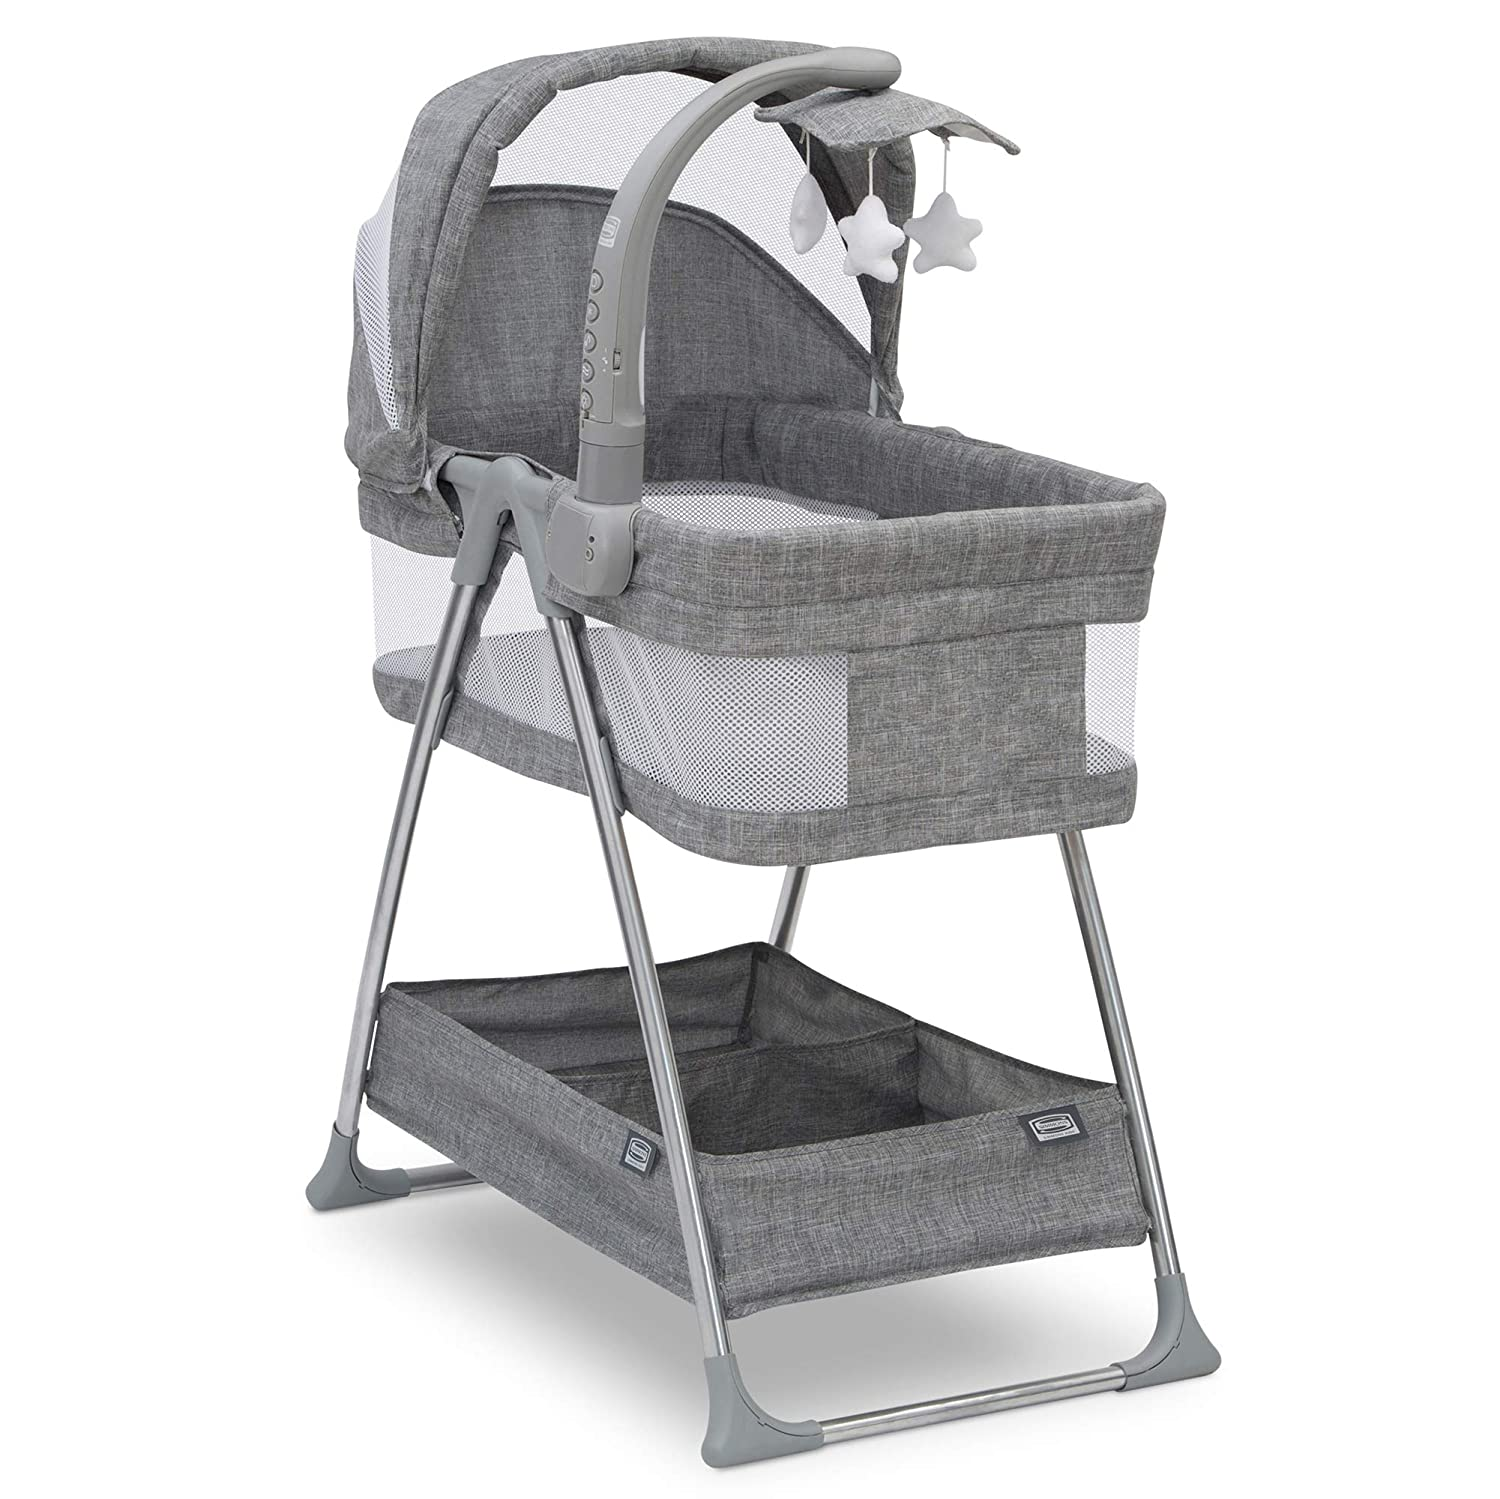 Simmons Kids City Sleeper Bassinet, Grey Tweed